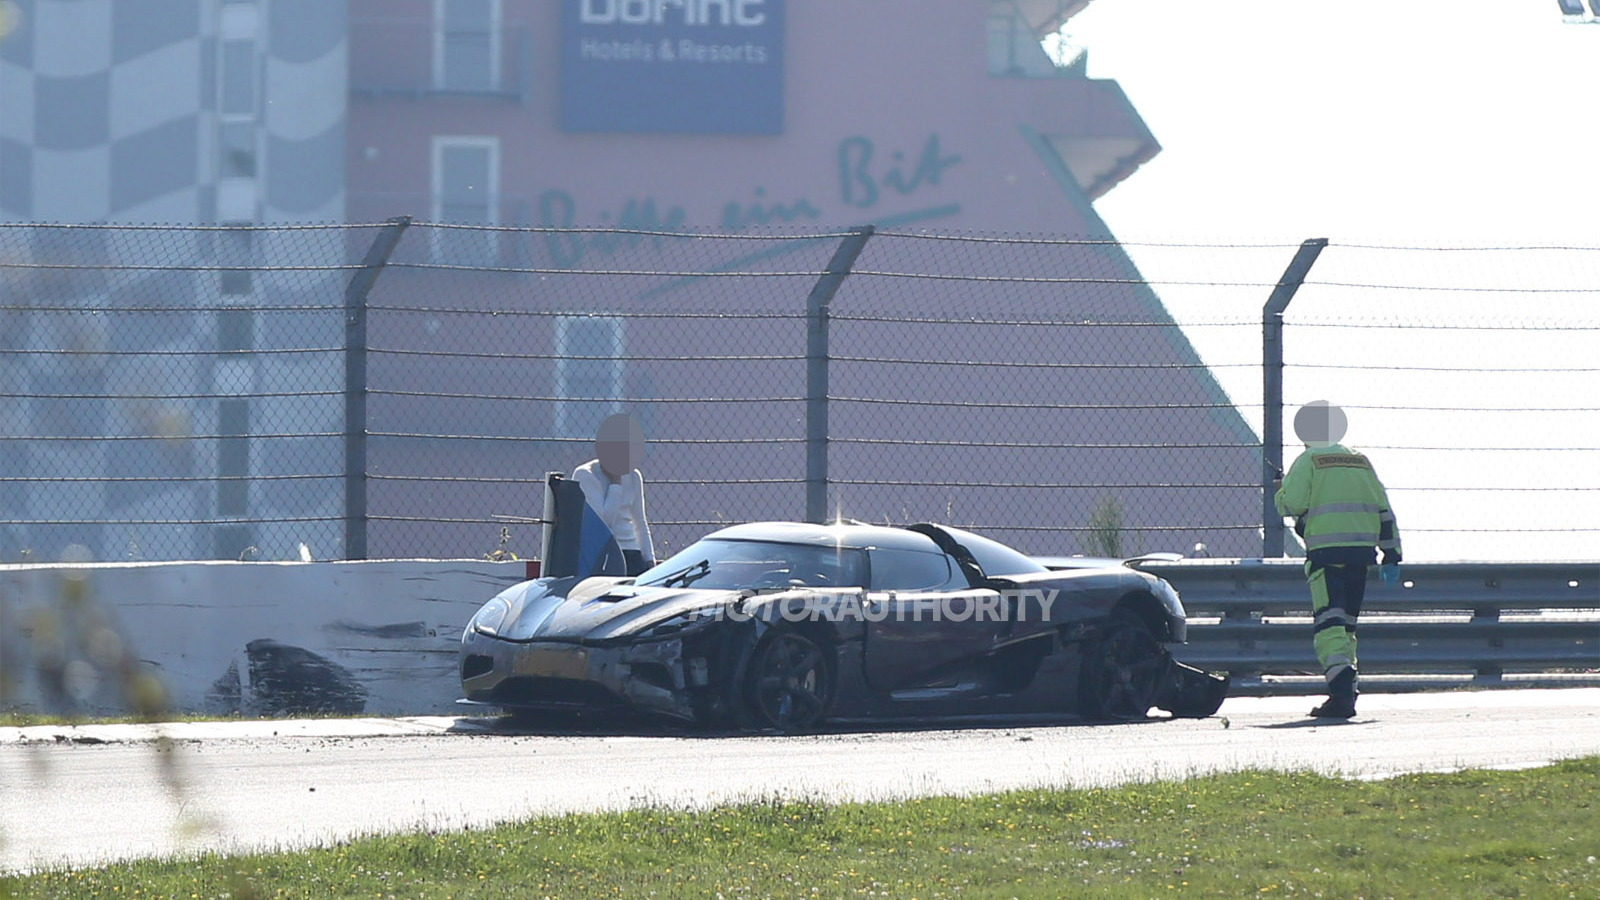 2016 Koenigsegg Agera R prototype crashed at the Nürburgring